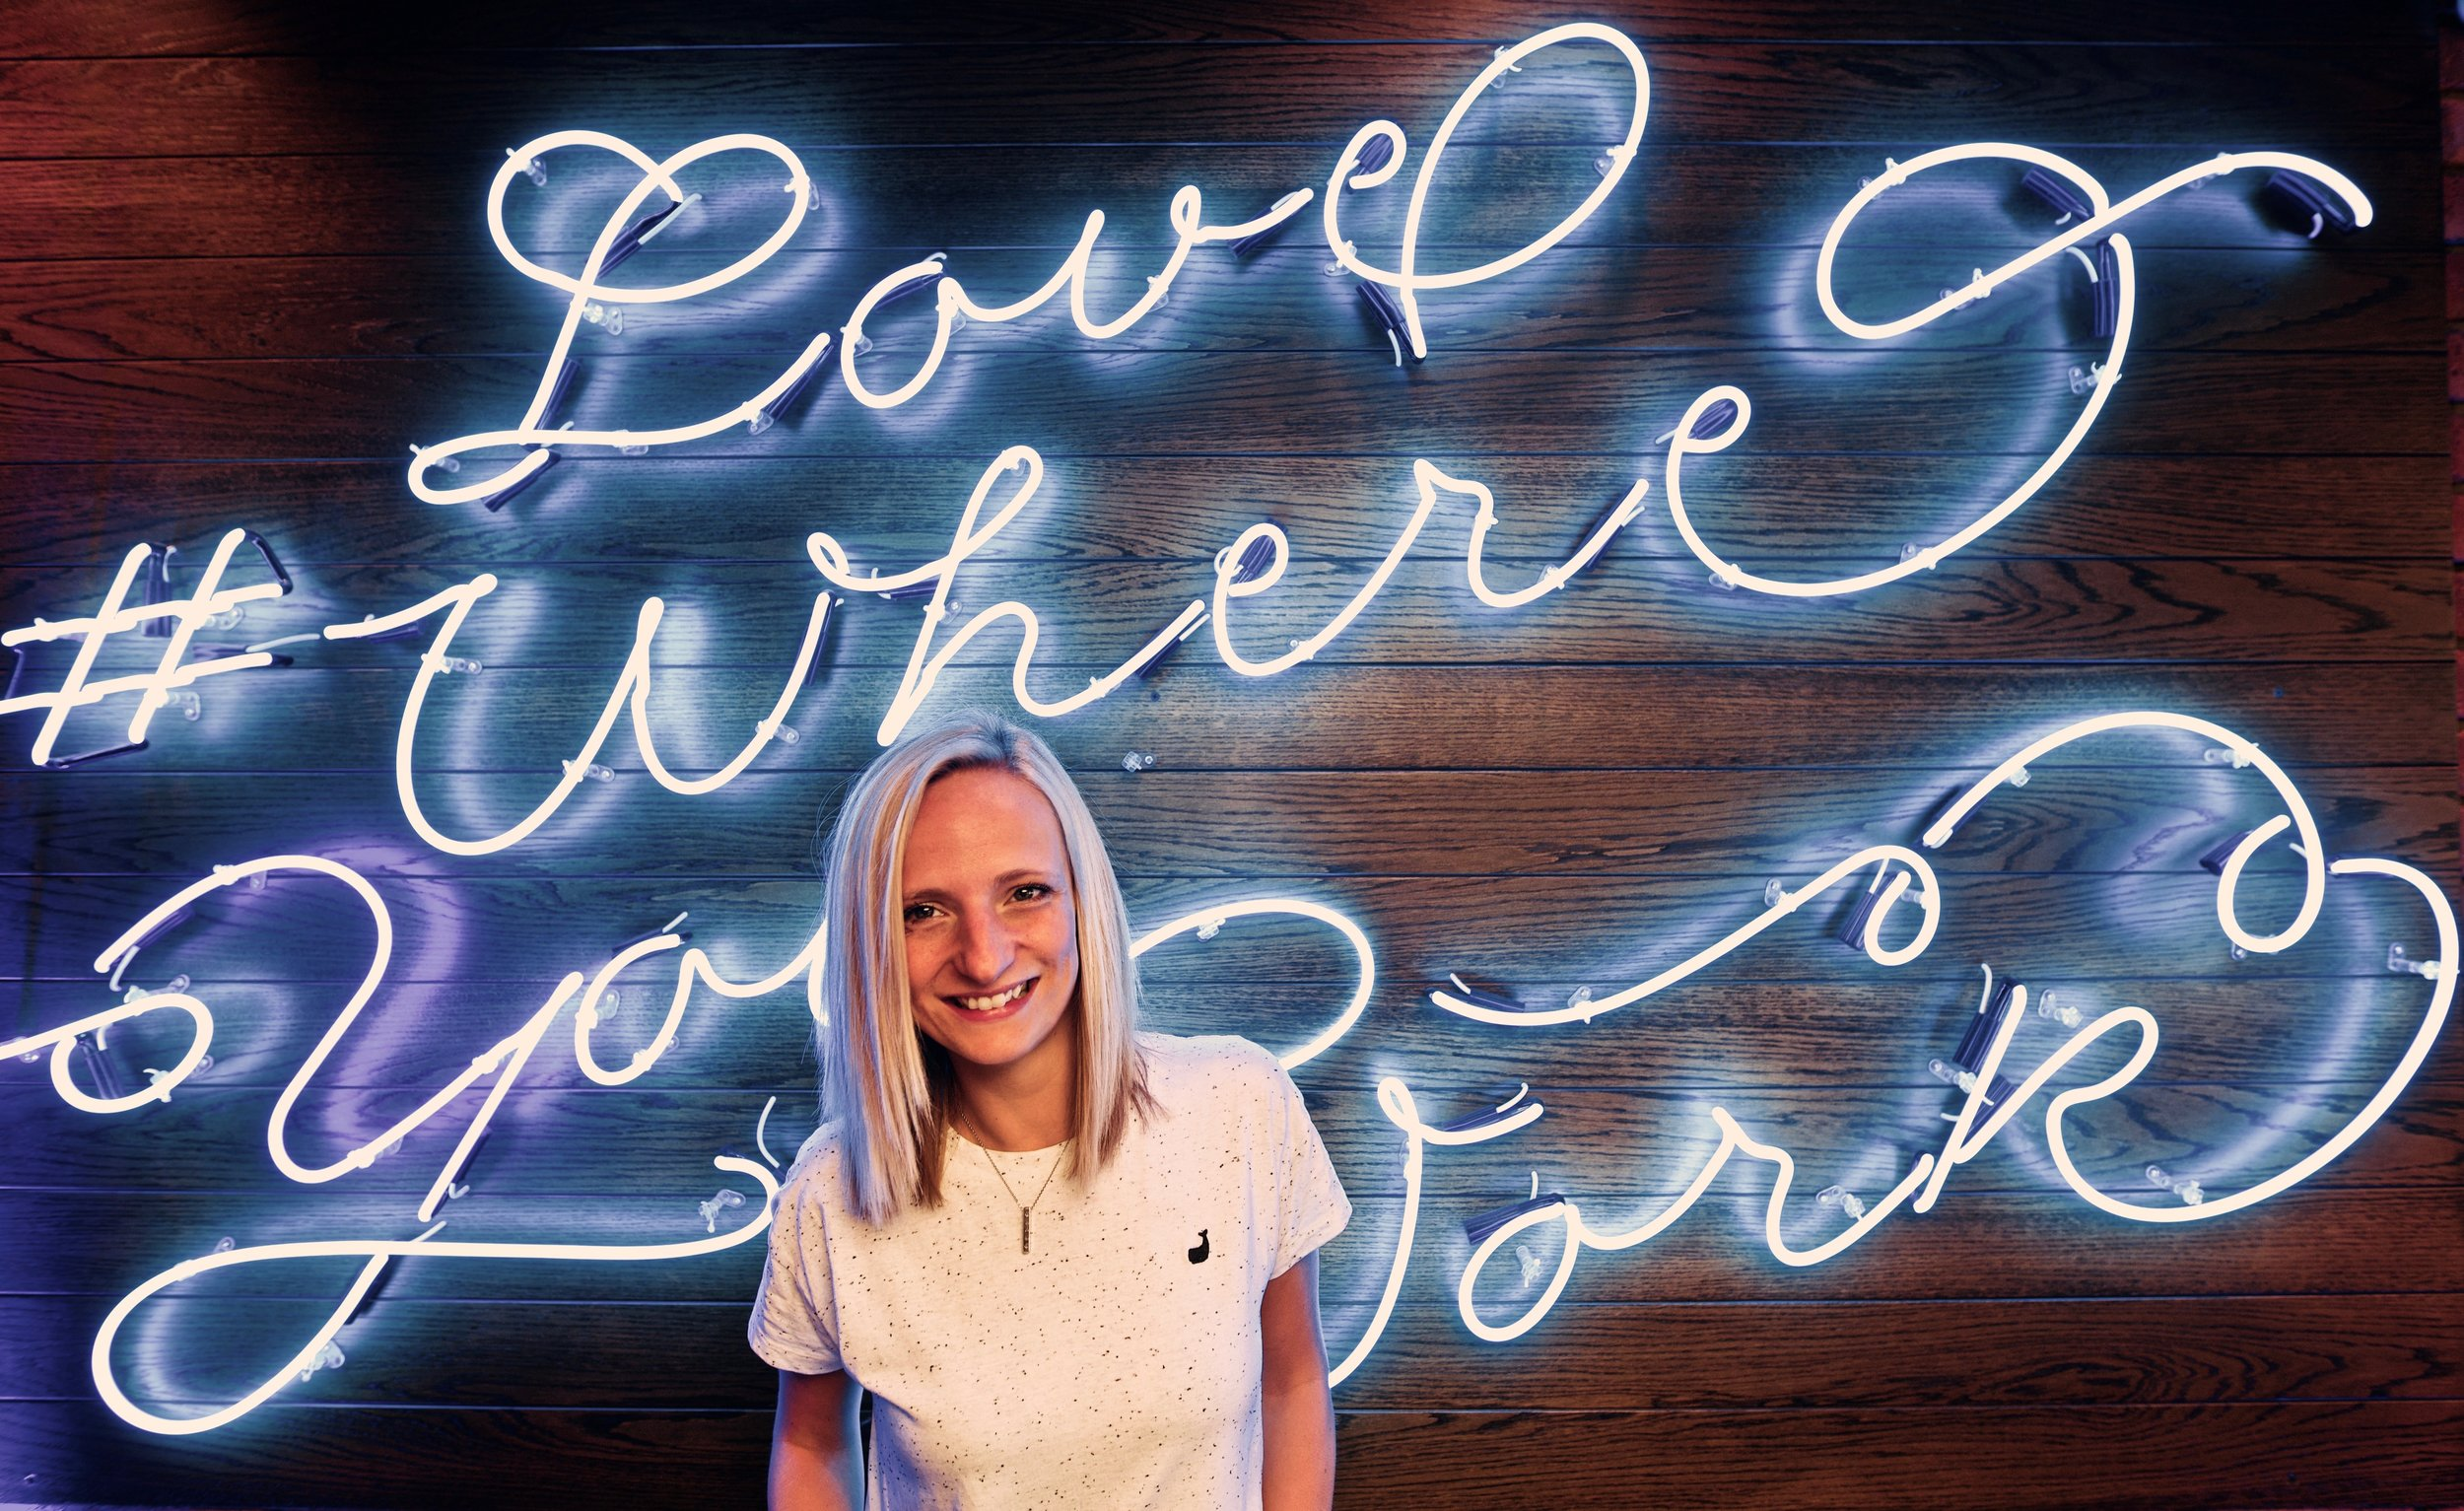 #70 Viv Bowdler - Viv is the creative engine at Twitter UK. She designs everything from custom emojis, client proposals to OOH. It doesn't stop there, she aids with the development of brand strategy all the way through to campaign wrap-ups, she has helped build some of the most widely seen campaigns on Twitter. She's pretty badass. She's also a great footballer and a hardcore Man City fan.Website: vivbowdler.comTwitter: twitter.com/viv